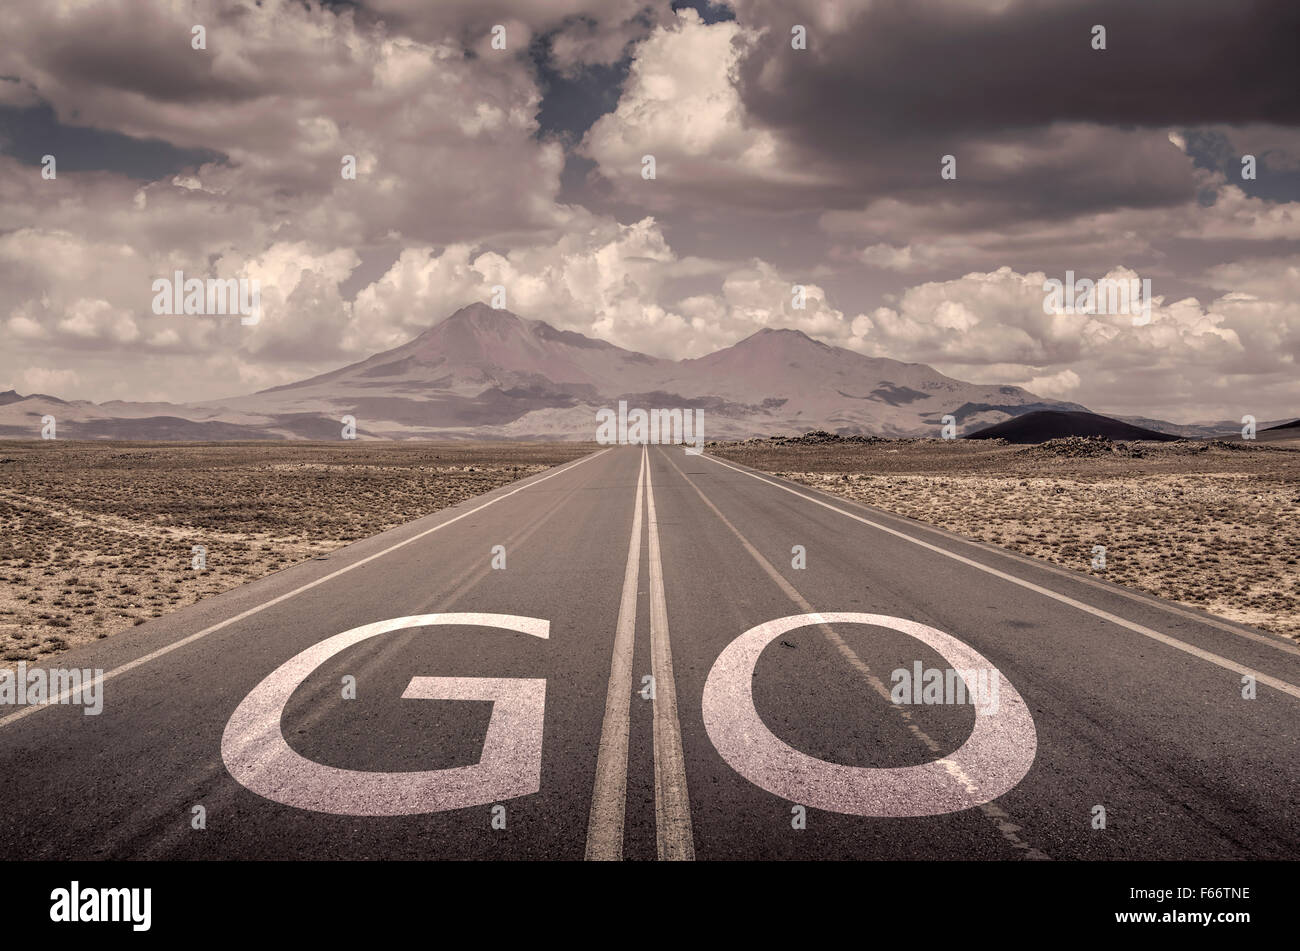 go text on the road - Stock Image